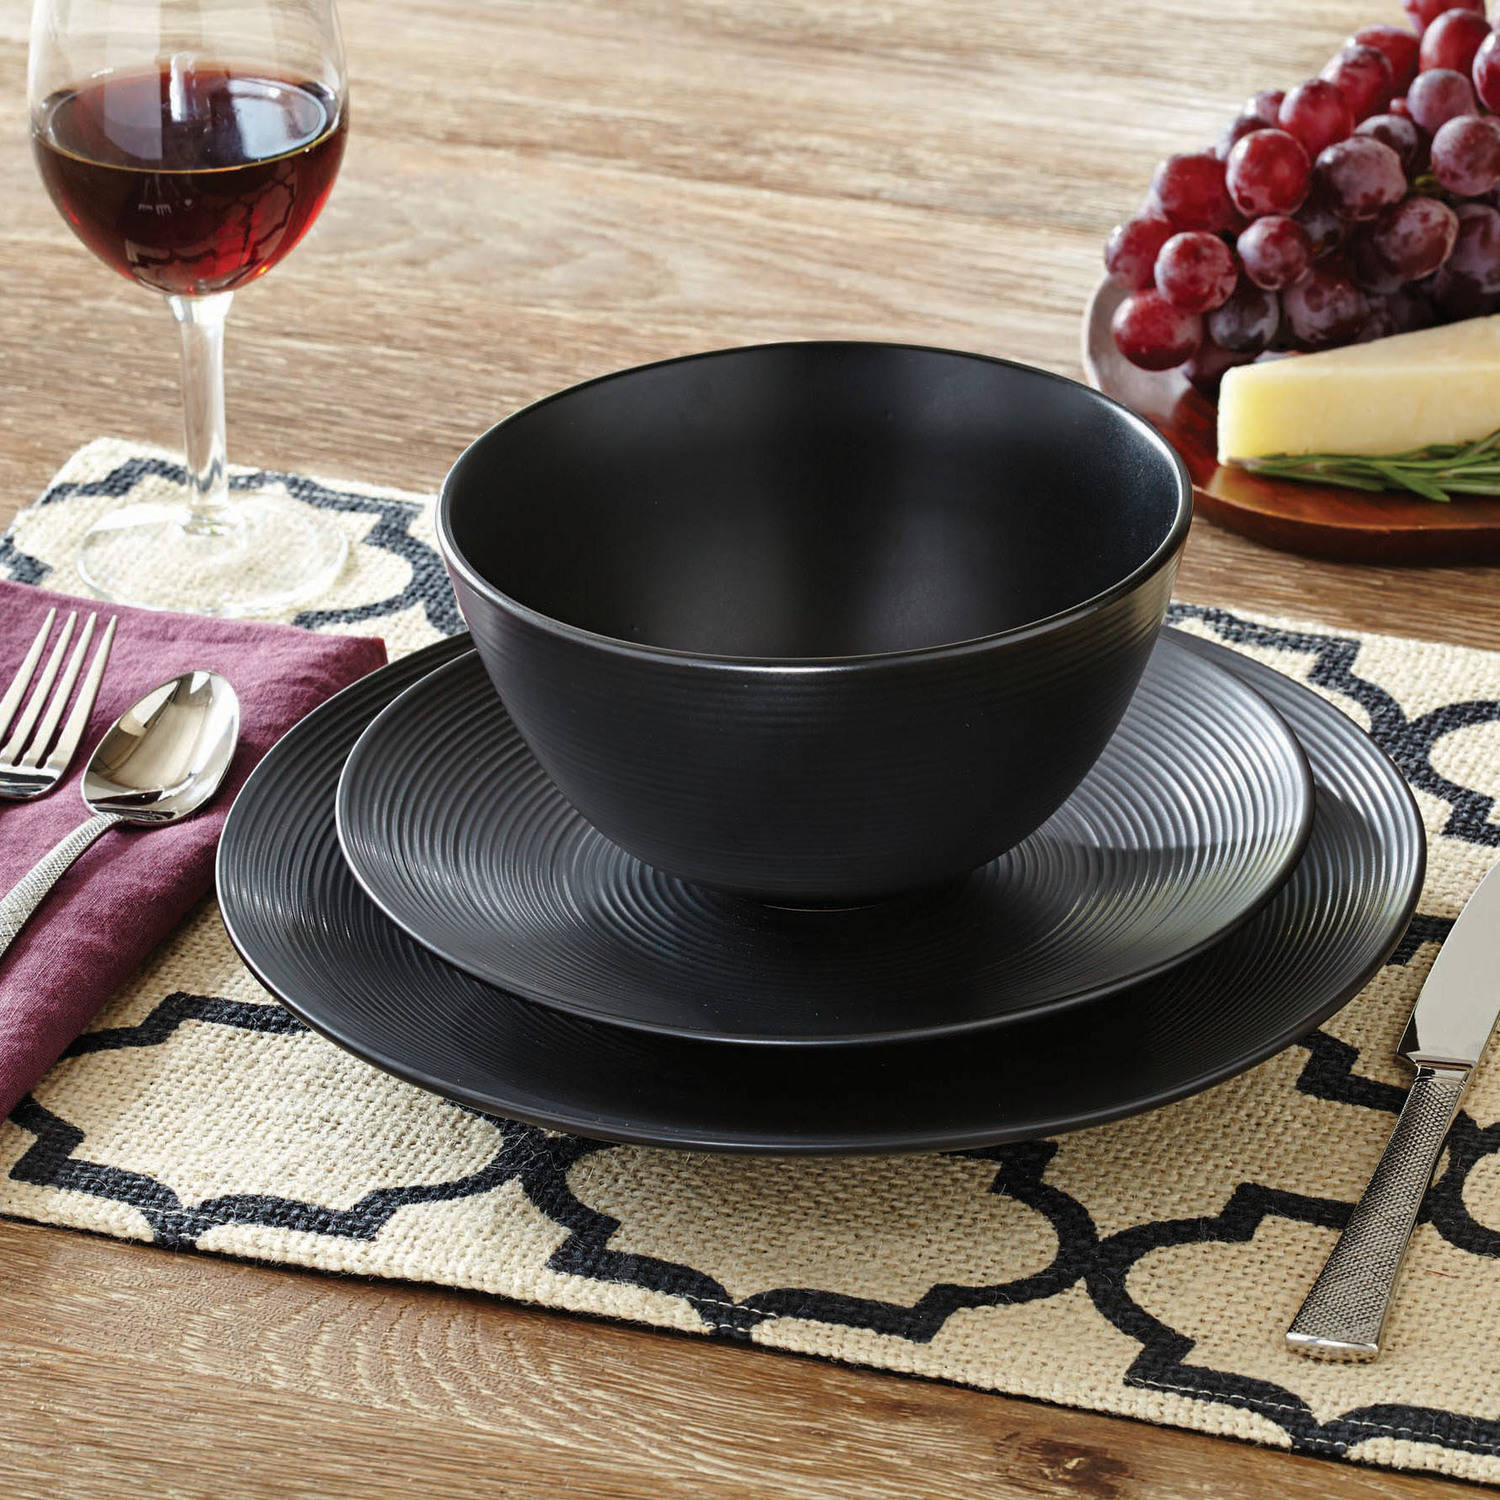 Better Homes and Gardens Matte Swirl 12-Piece Dinnerware Set Black - Walmart.com & Better Homes and Gardens Matte Swirl 12-Piece Dinnerware Set Black ...